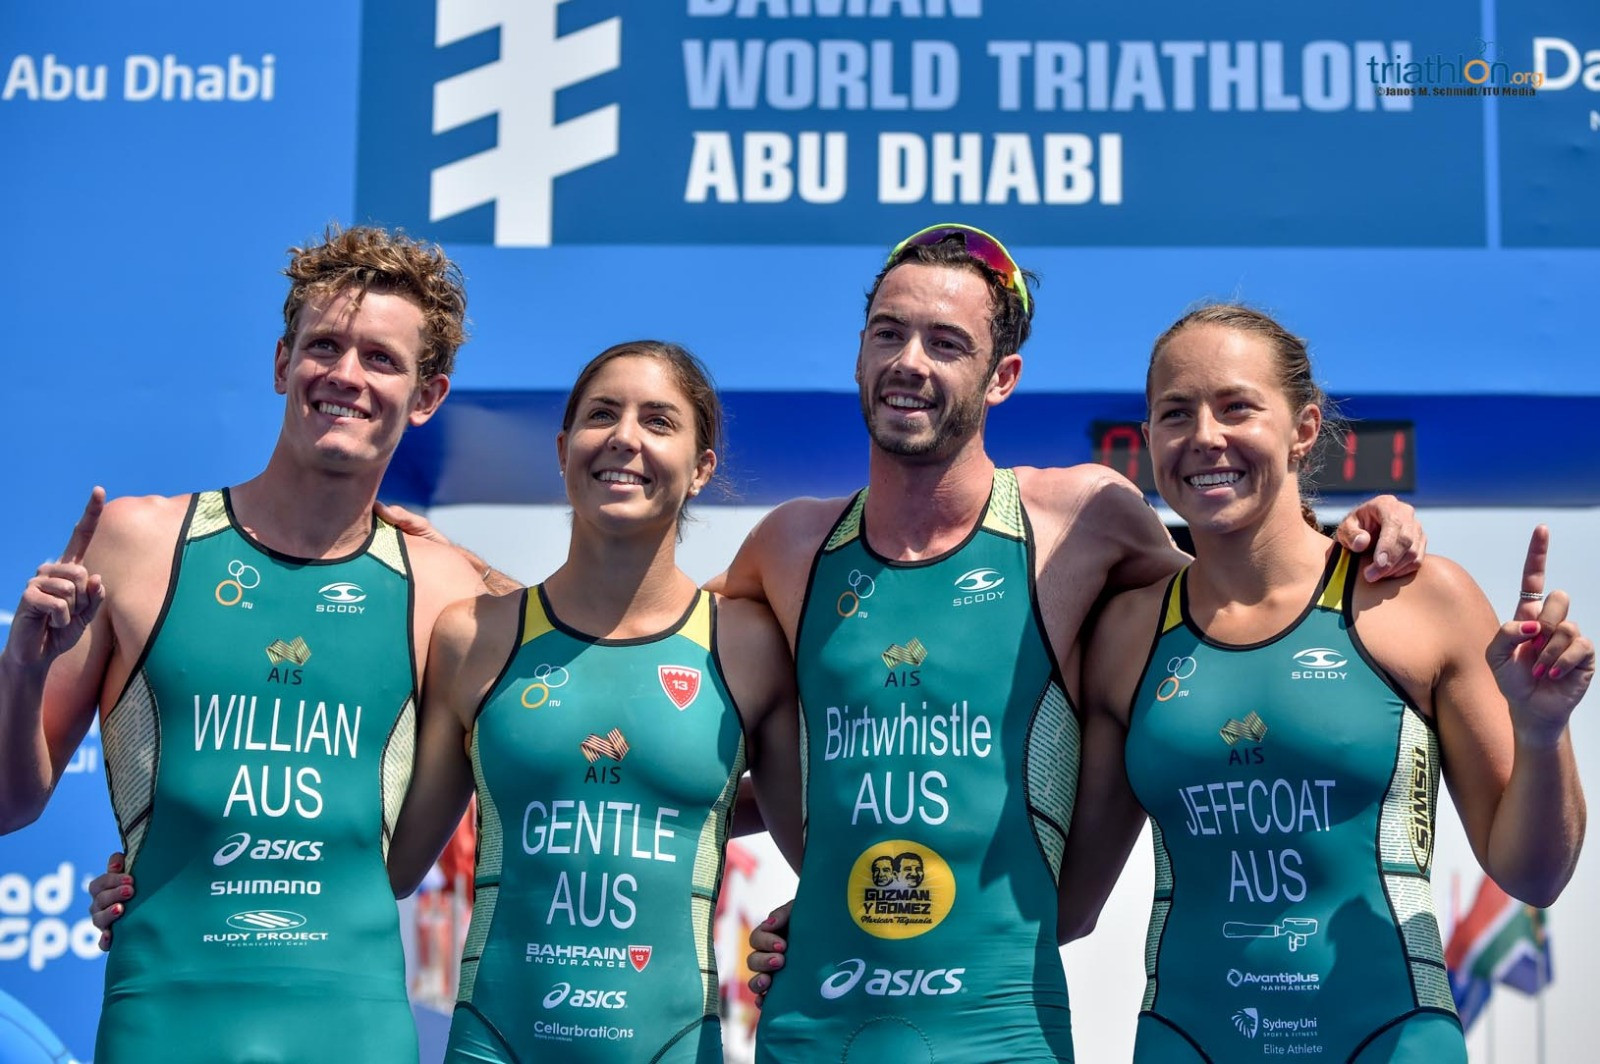 Birtwhistle brings World Triathlon Series mixed relay gold home for Australia in Abu Dhabi